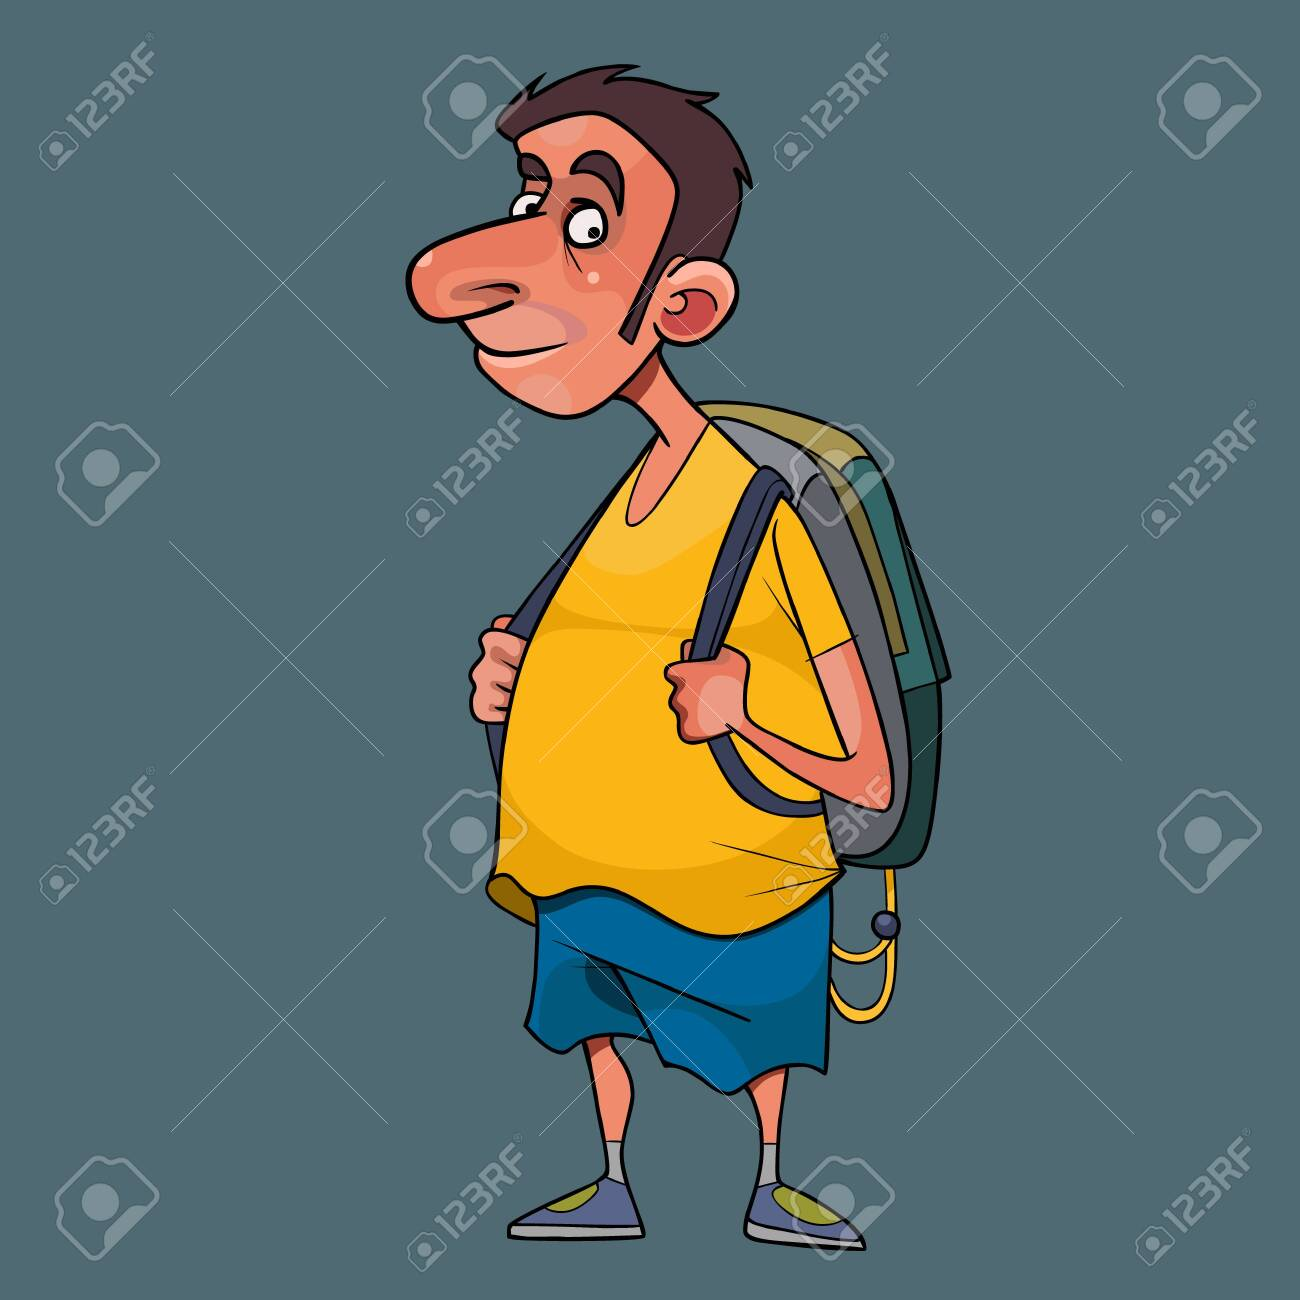 cartoon man in summer clothes with backpack - 147000341